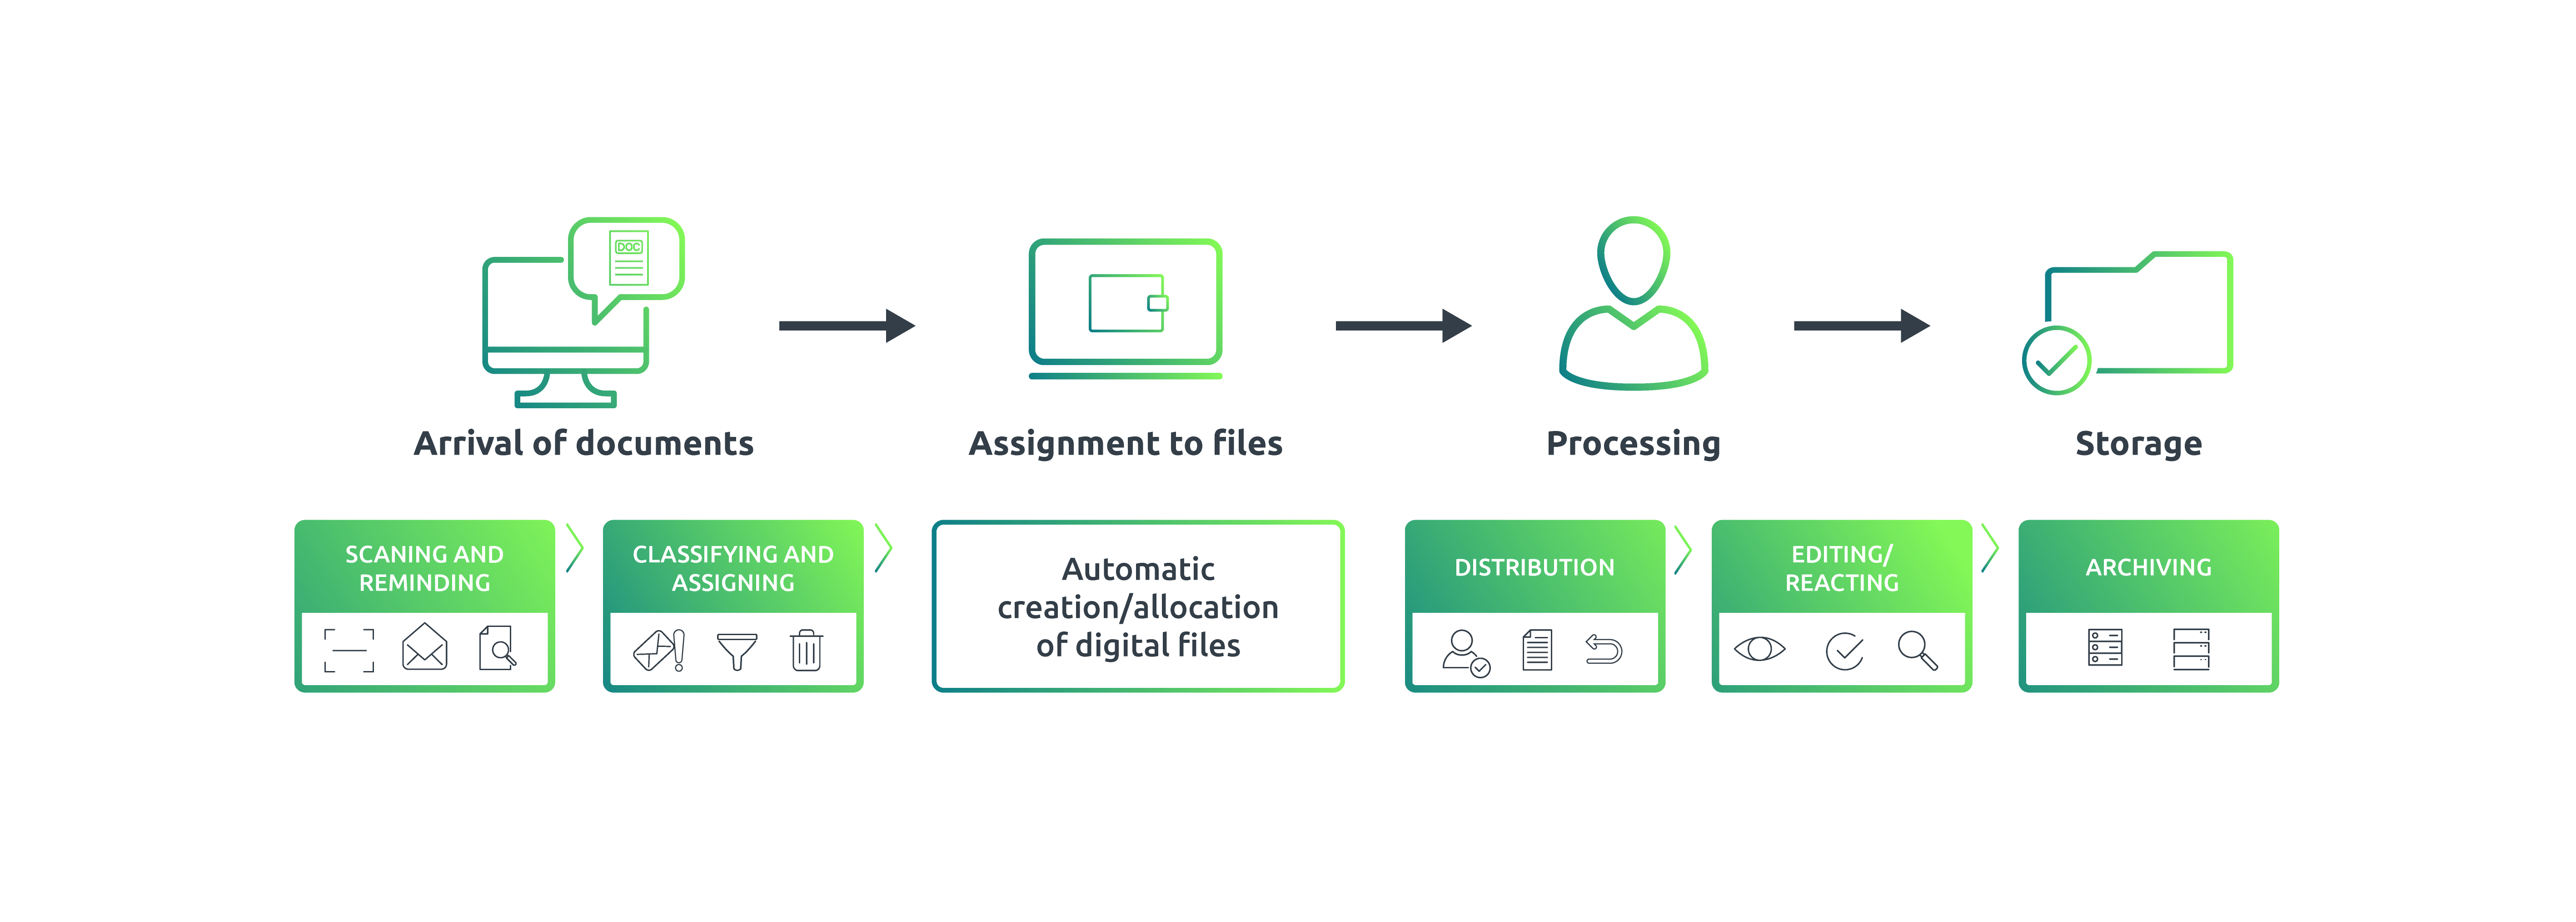 Infographic - Intelligent processing and archiving